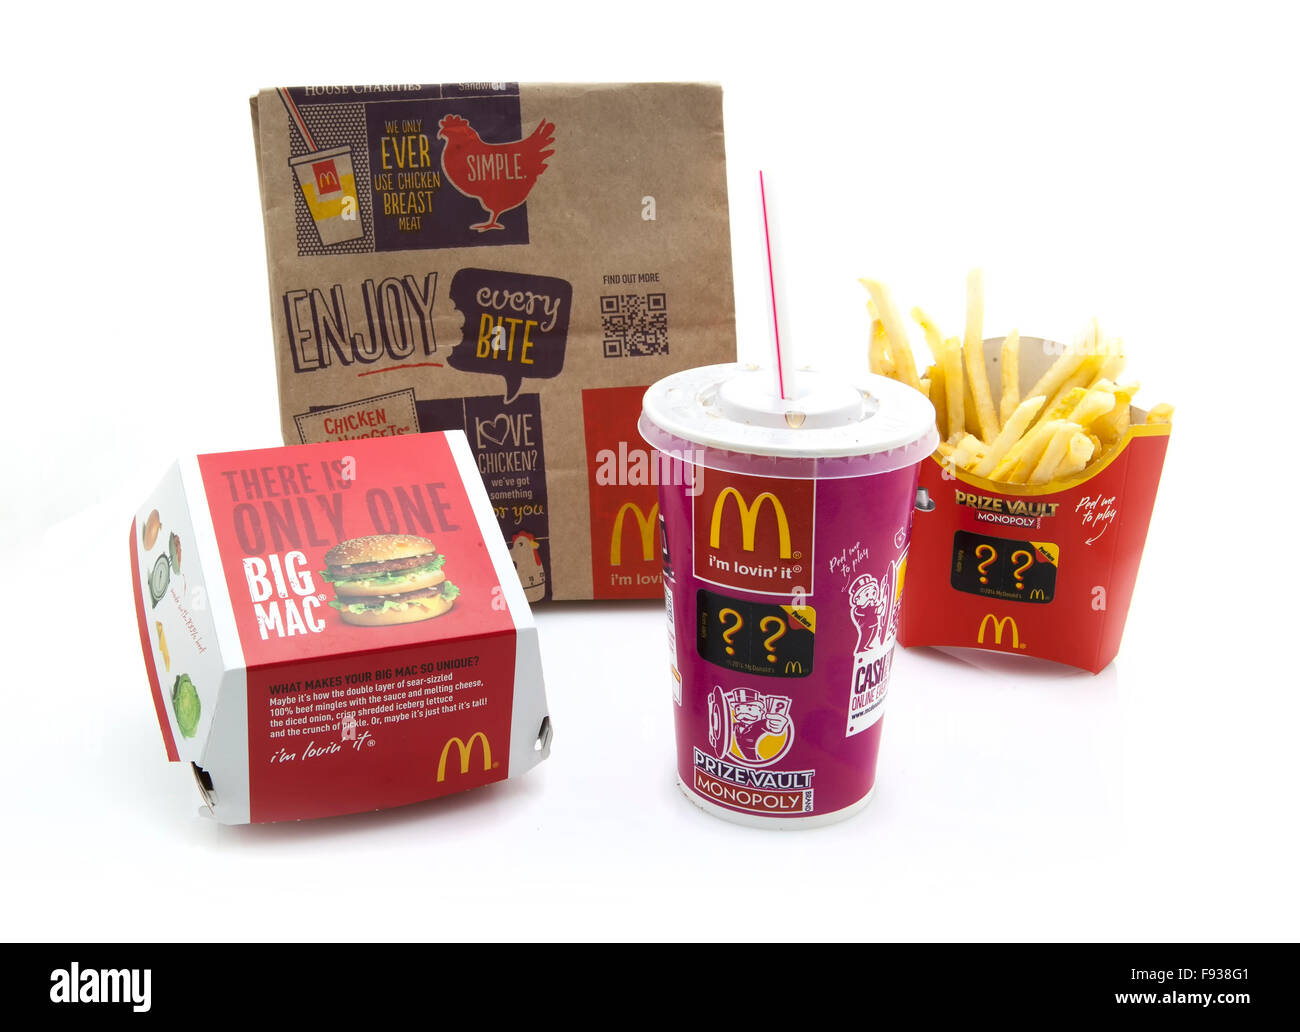 McDonalds Big Mac Meal on a white background - Stock Image